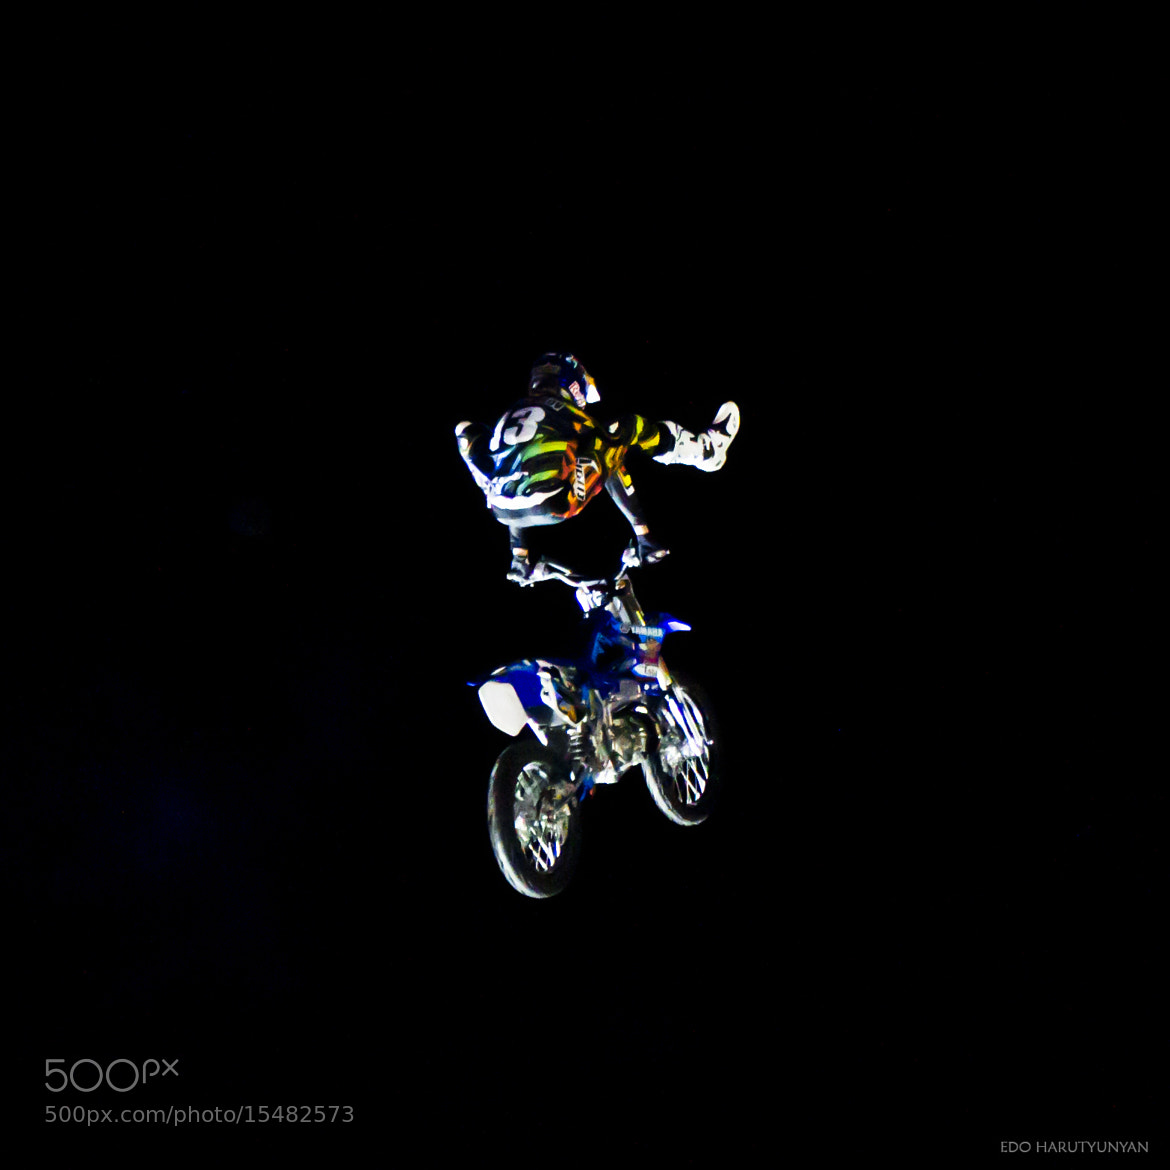 Photograph X-Fighters Jams  by Edo Harutyunyan /Lil Makaveli/ on 500px